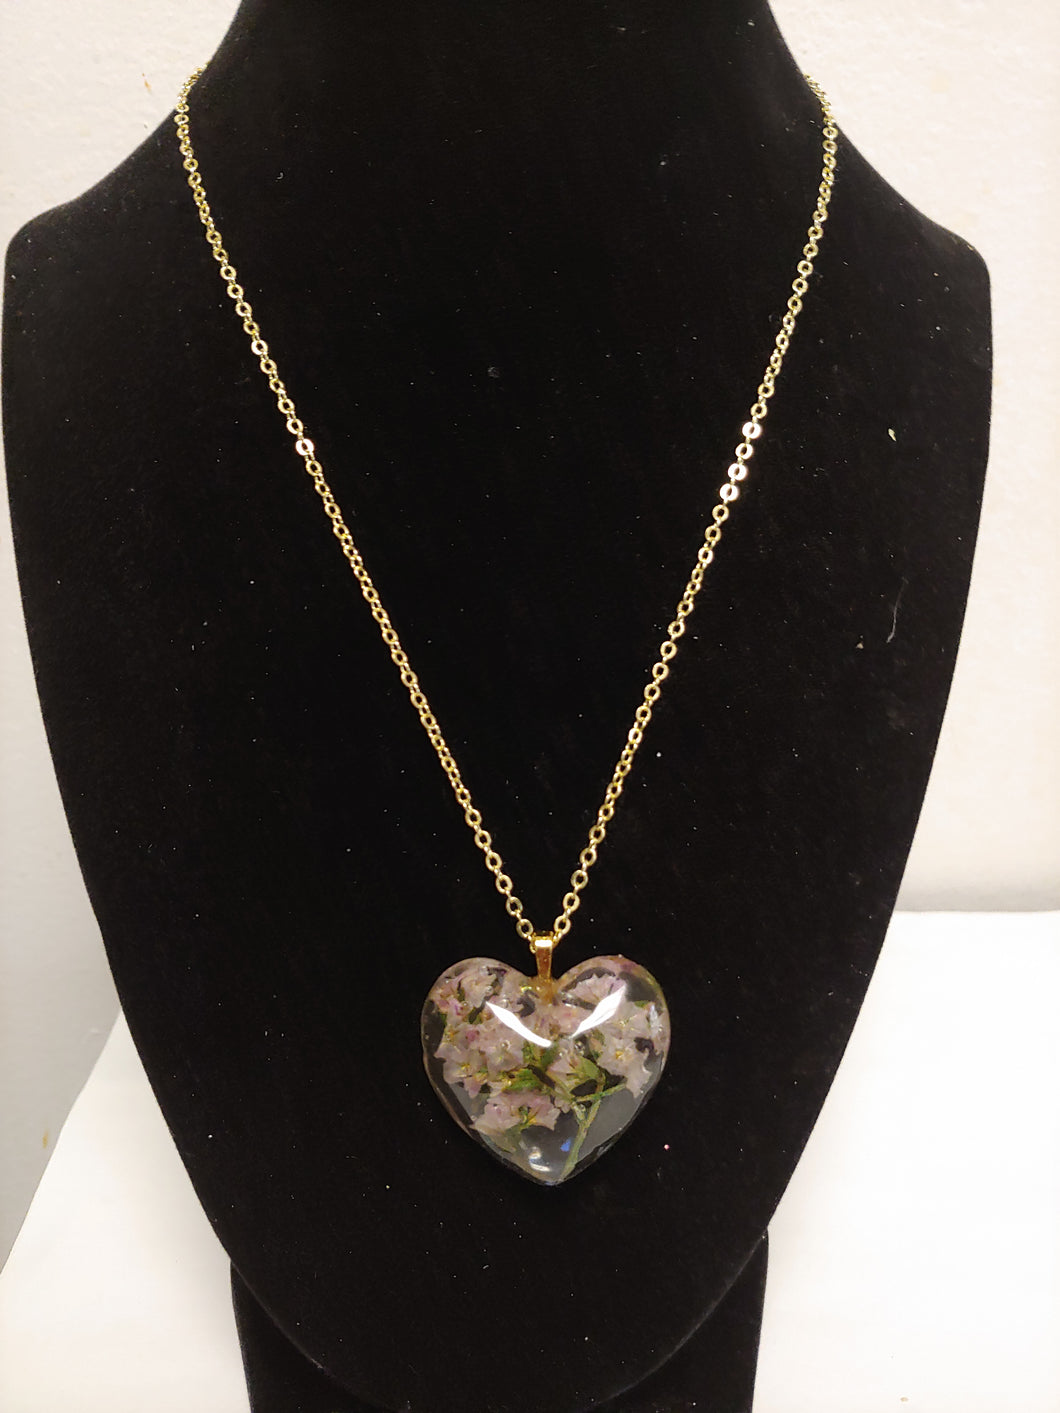 Carnation Heart Pendant Necklace